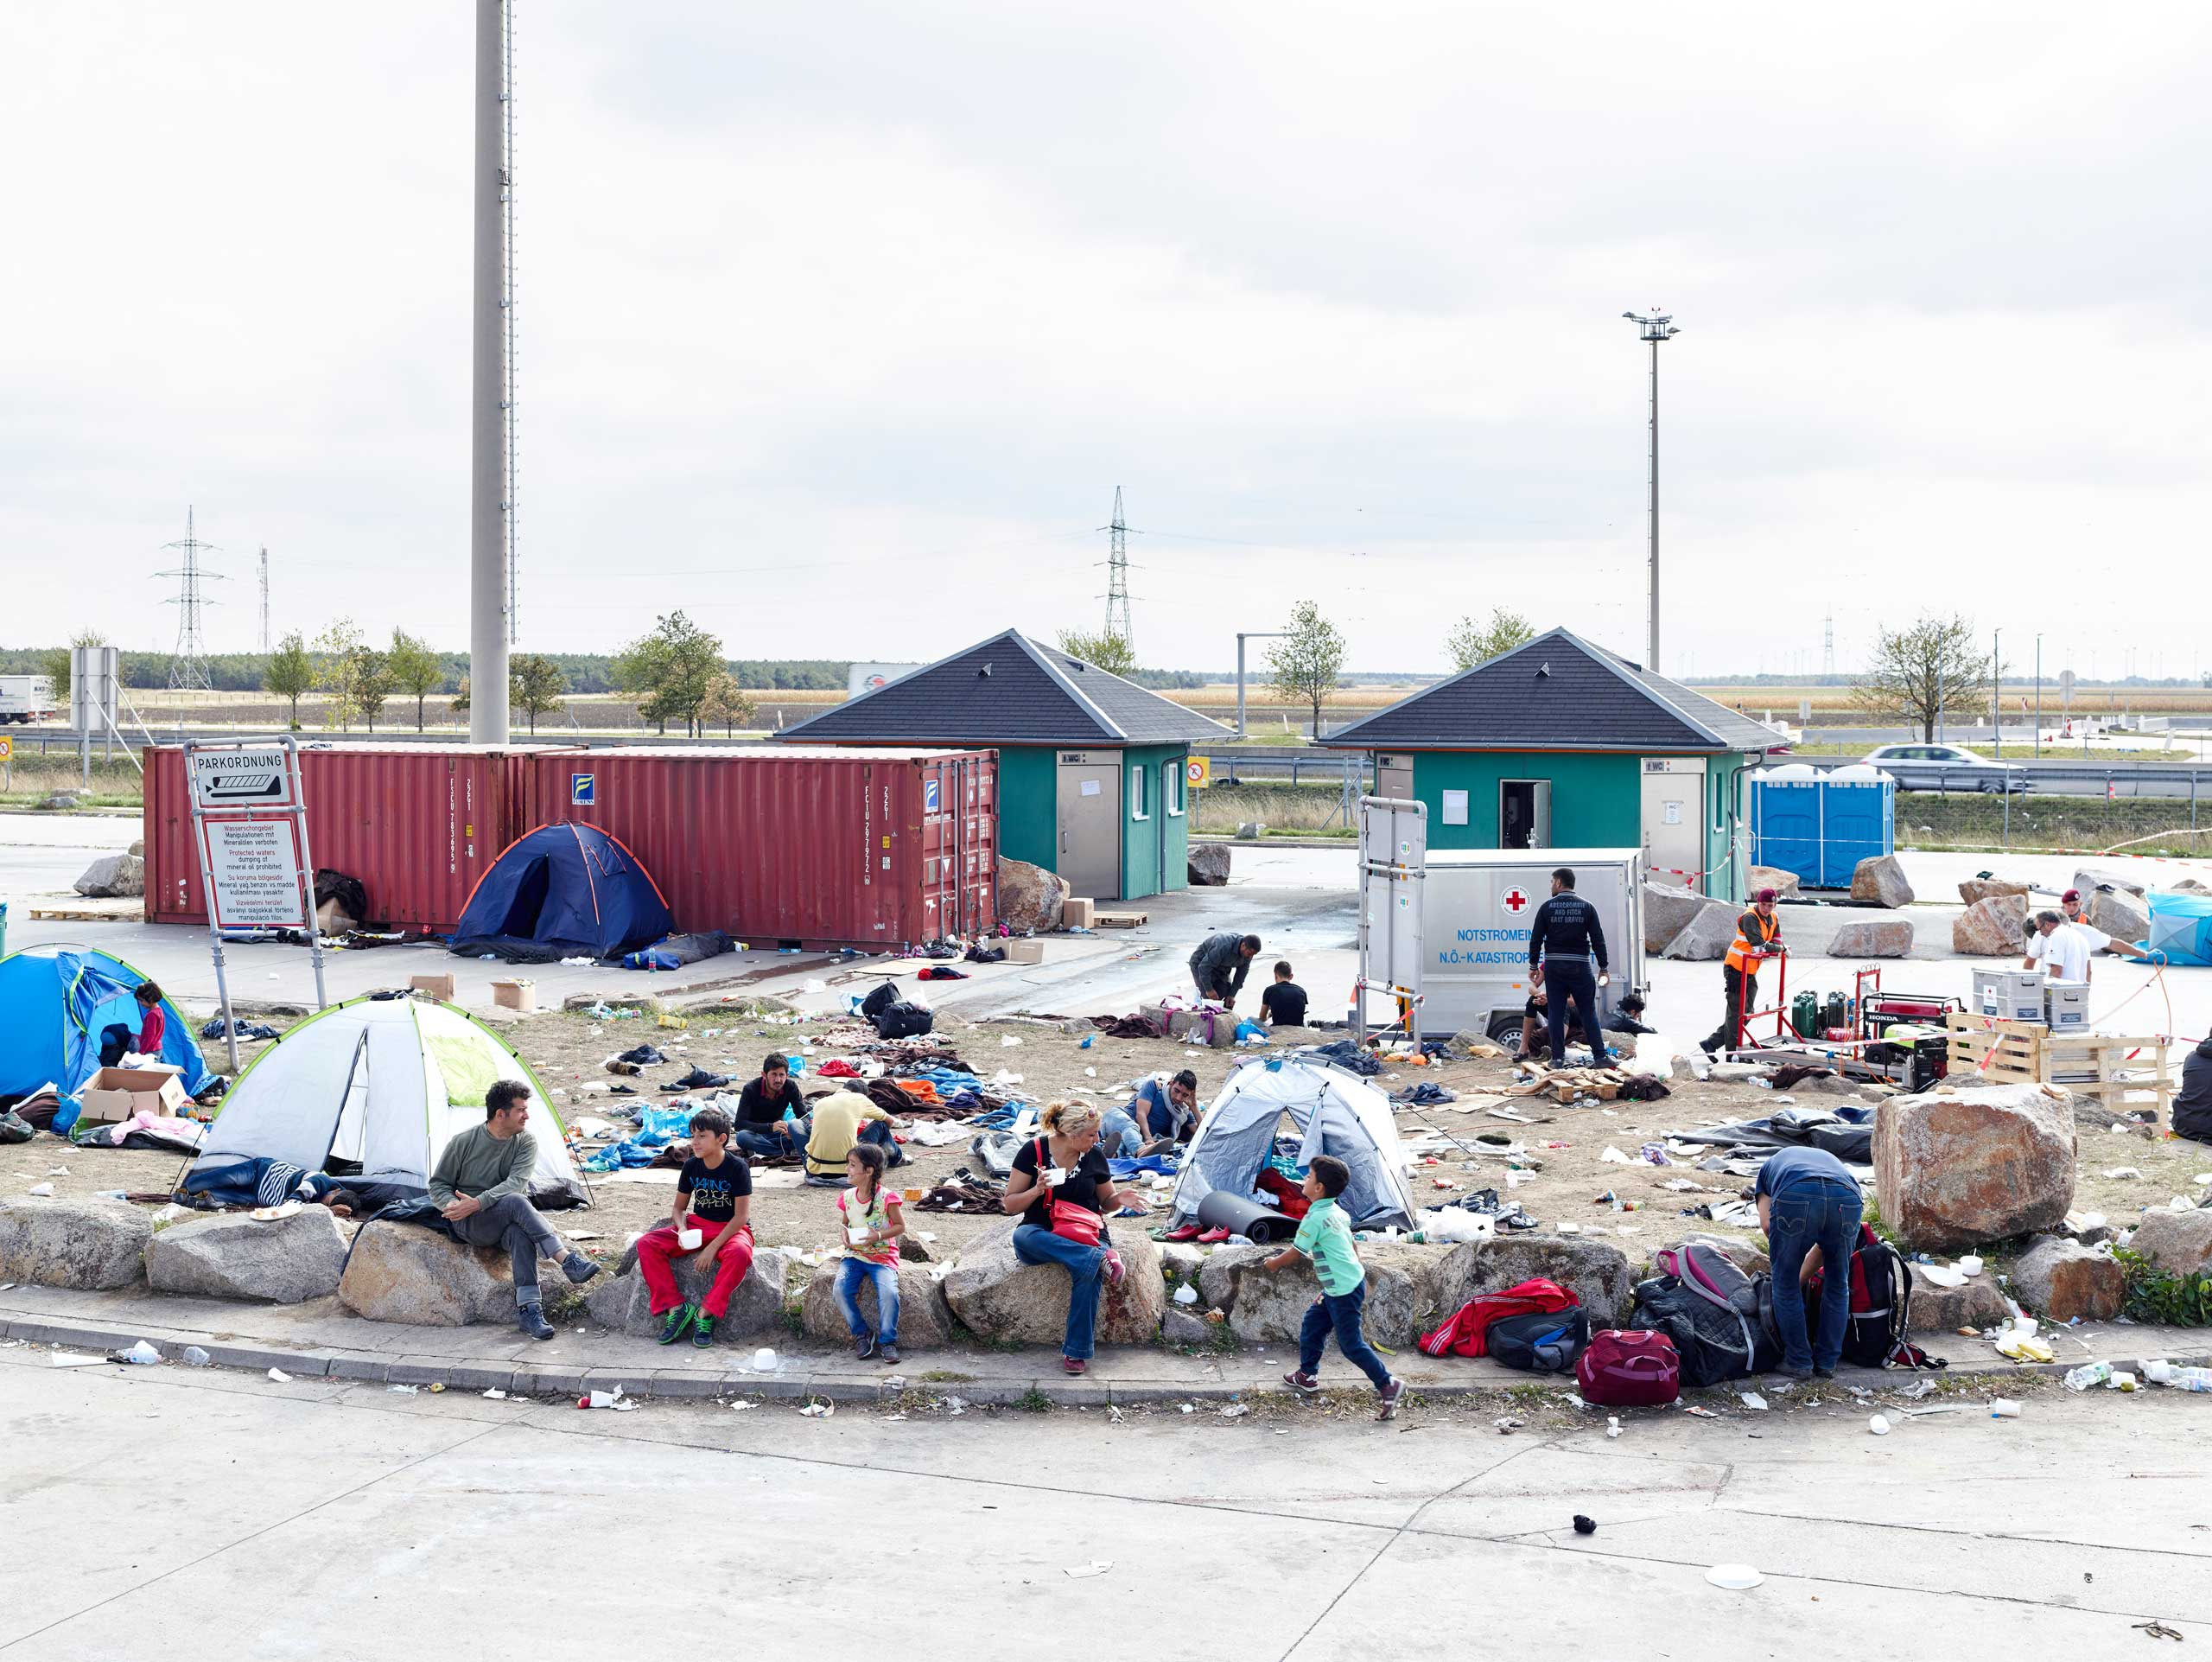 Refugees wait in Nickelsdorf, Austria, on the Hungary border, a major entry point for migrants from the Middle East.